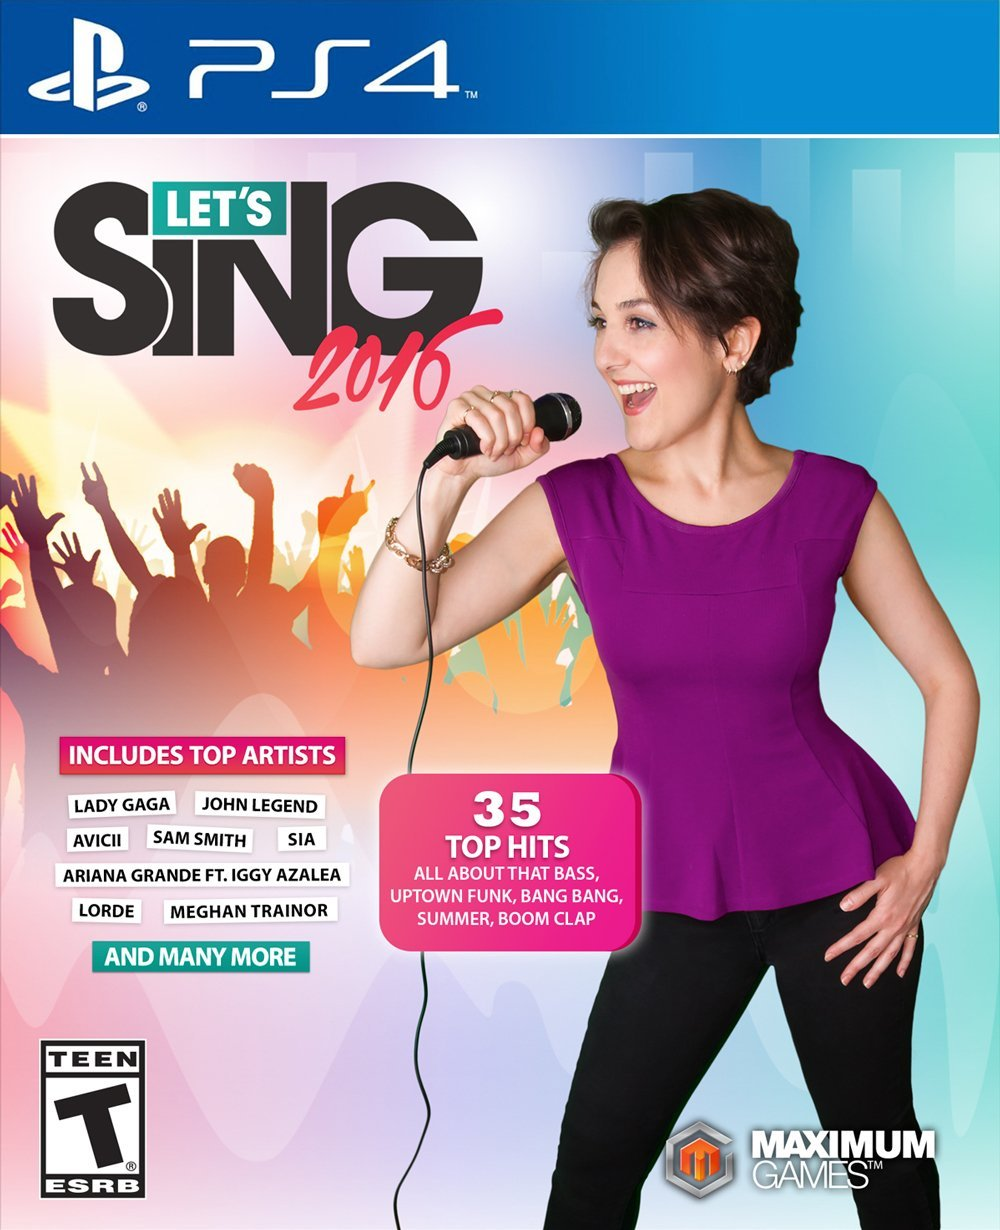 Let's Sing 2016 - Classic